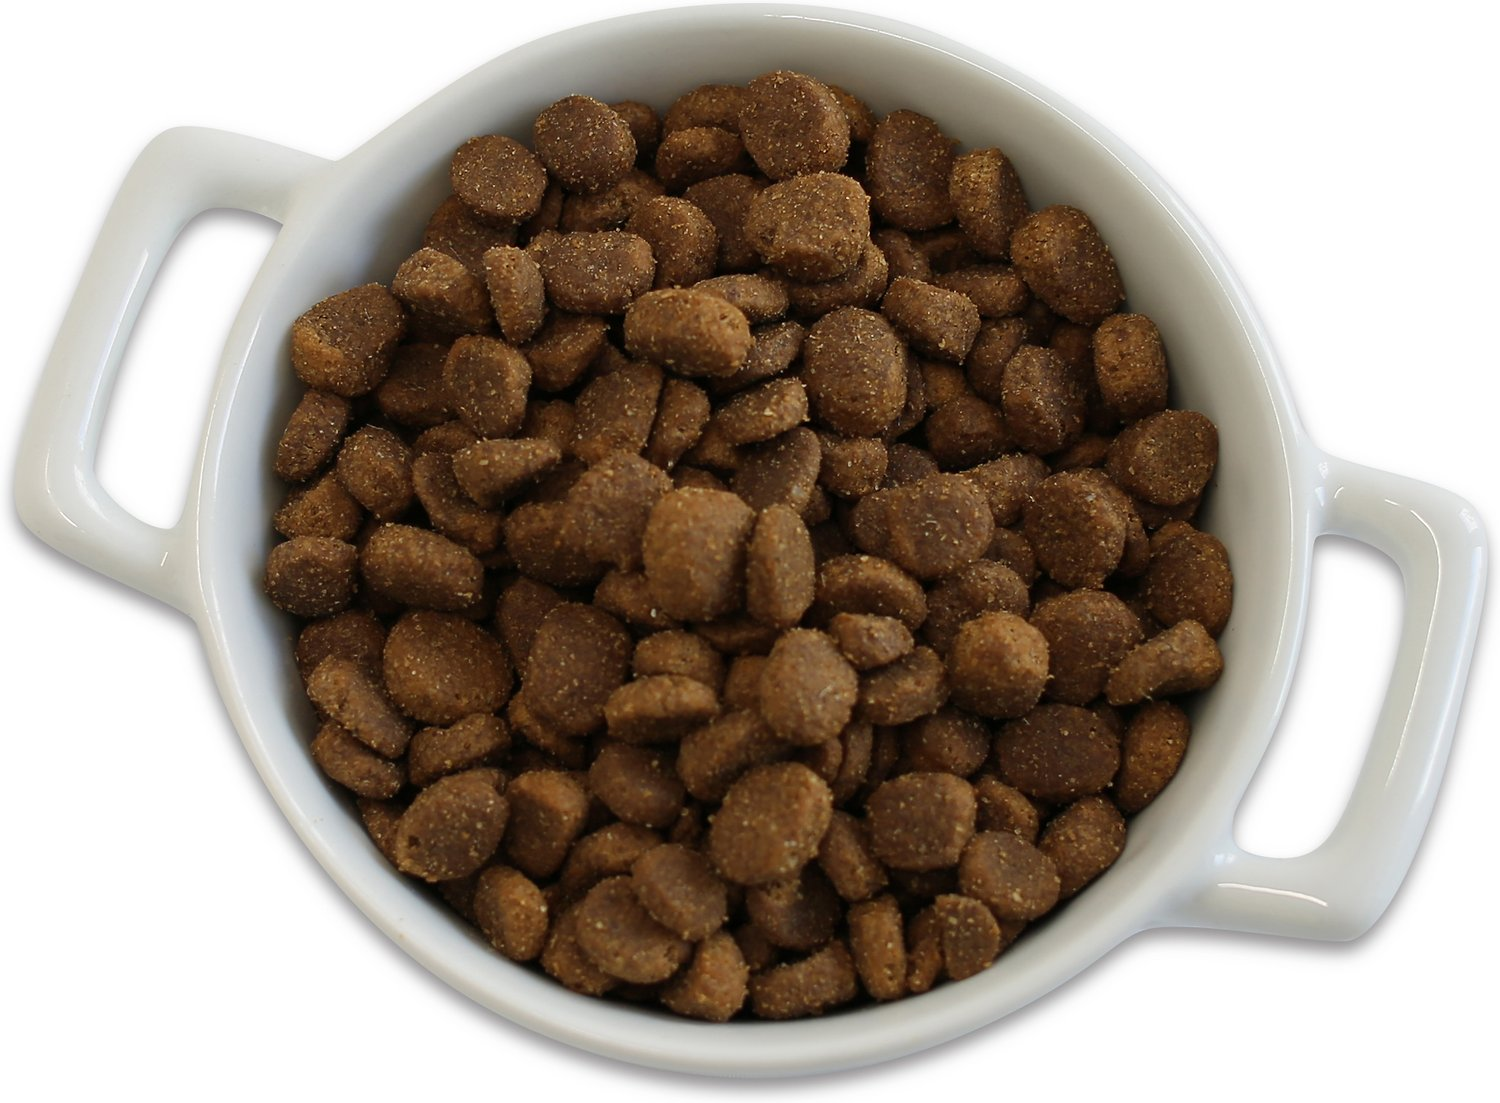 Small Size Dry Dog Food